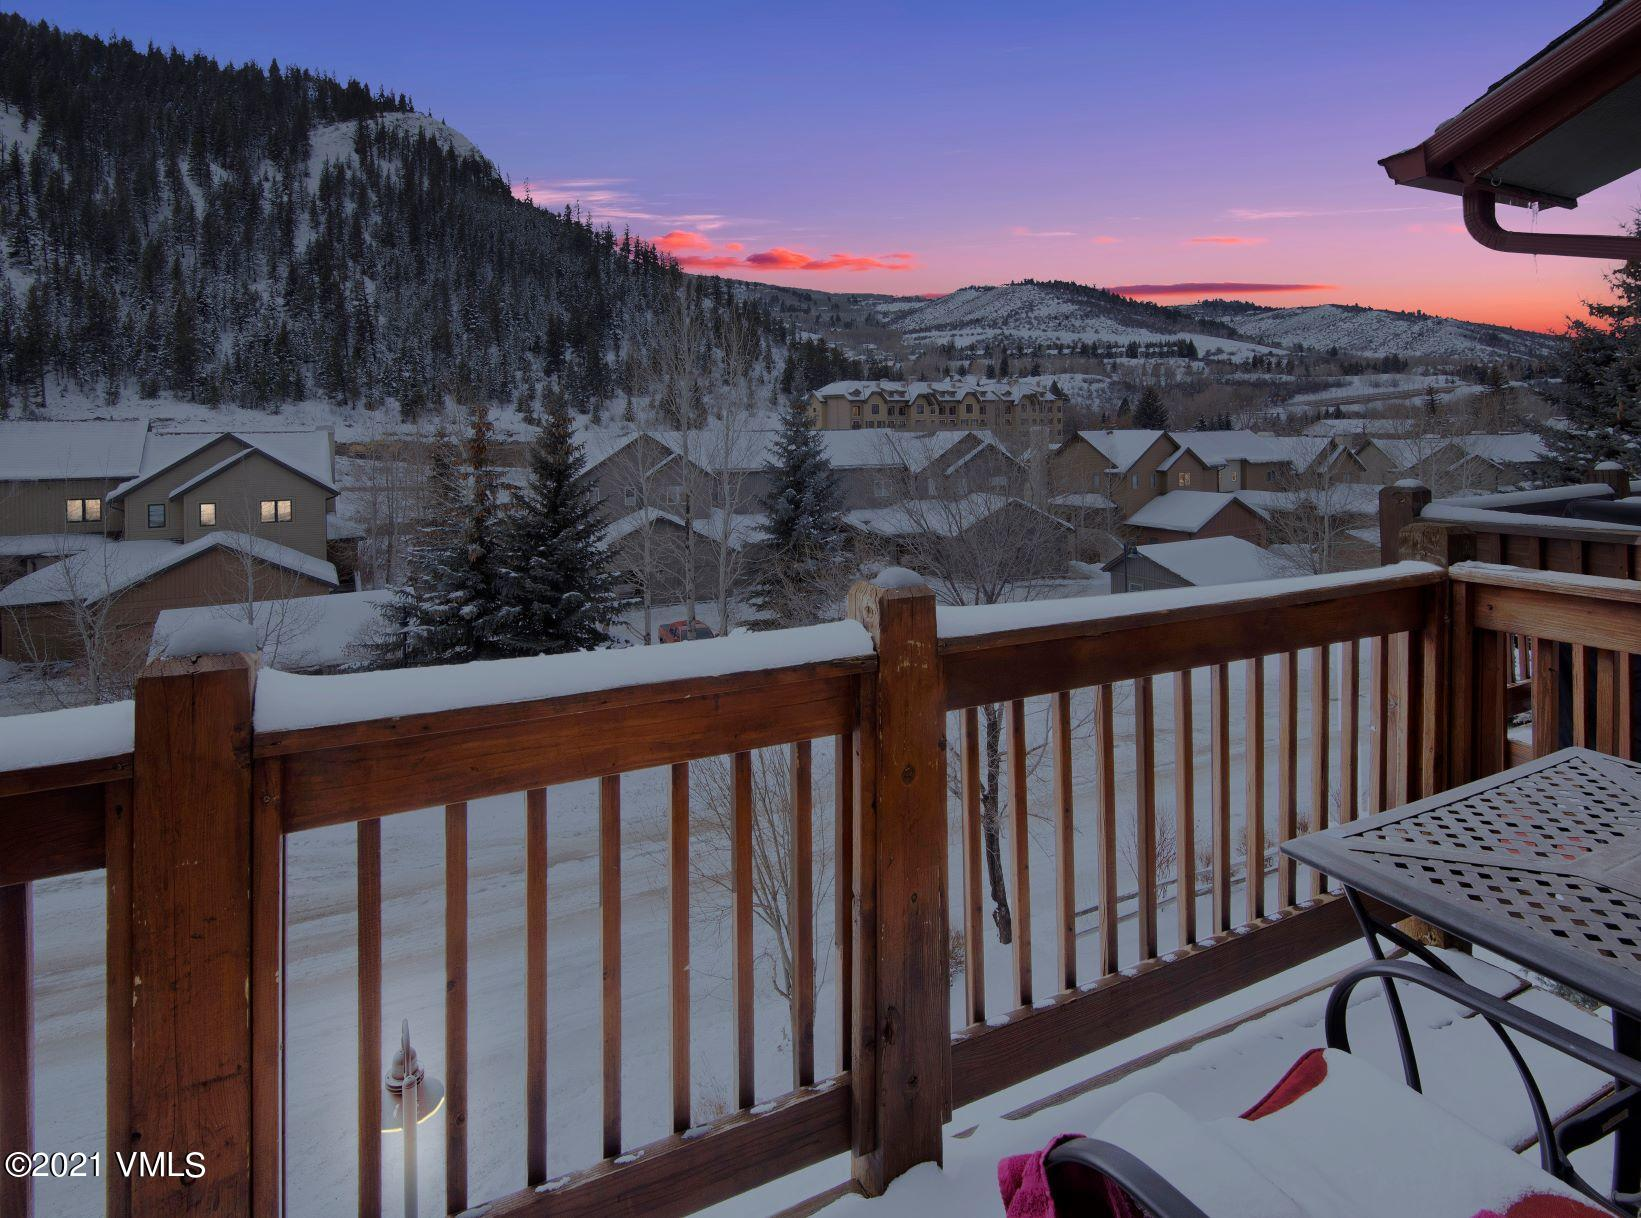 Top floor two bedroom condo with a one car garage. Walking distance to the Westin gondola and town of Avon bus right across the street. South facing balcony with views toward Beaver Creek. Close to everything. * photos are from 2019 listing, they have been altered to remove clutter. Seller would like to do a 1031 exchange.